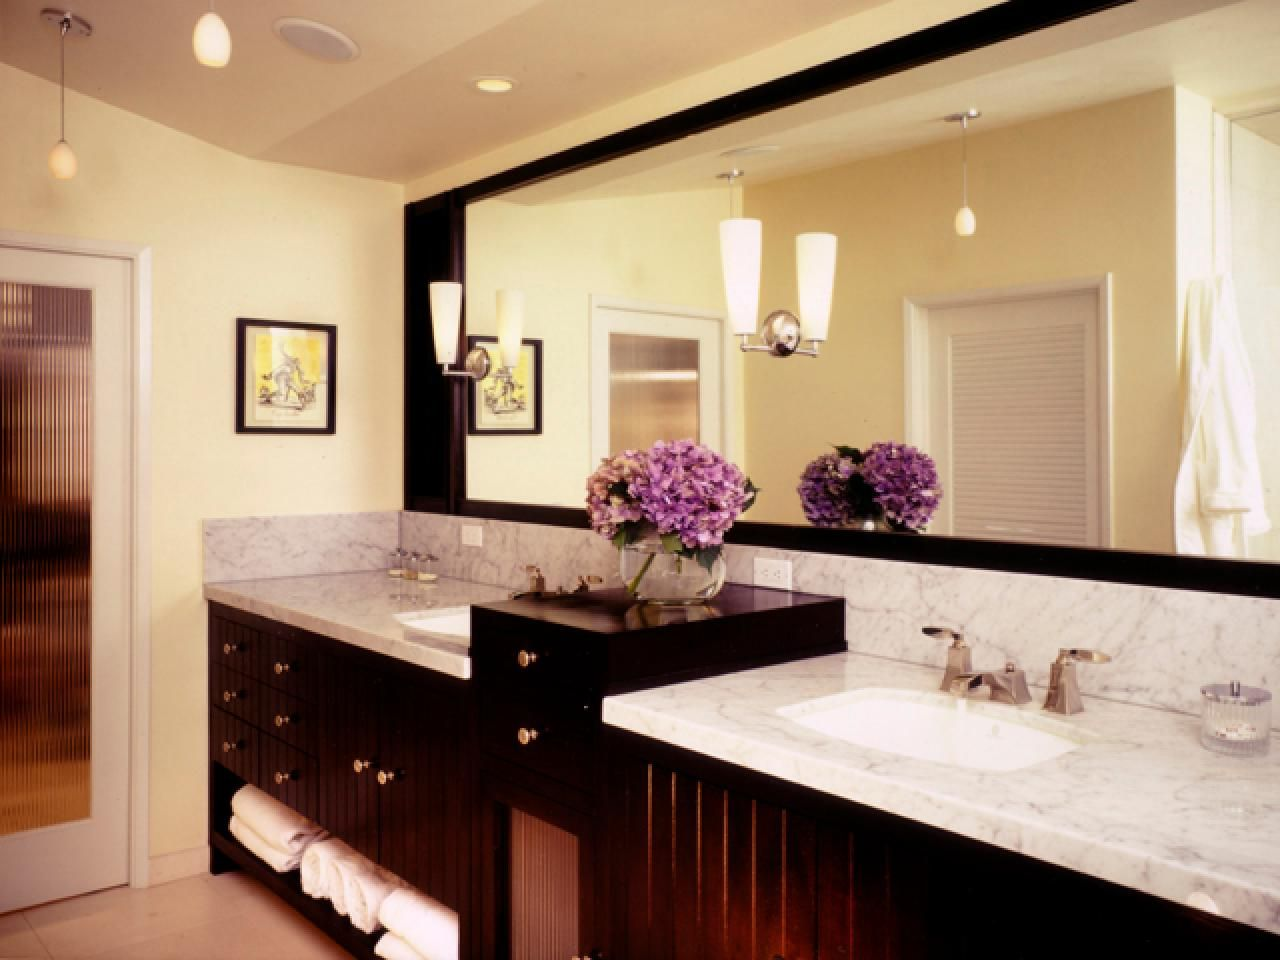 Big Vanity Mirror With Lights Mesmerizing Designing Bathroom Lighting  Remodel Bathroom Plumbing Fixtures Review